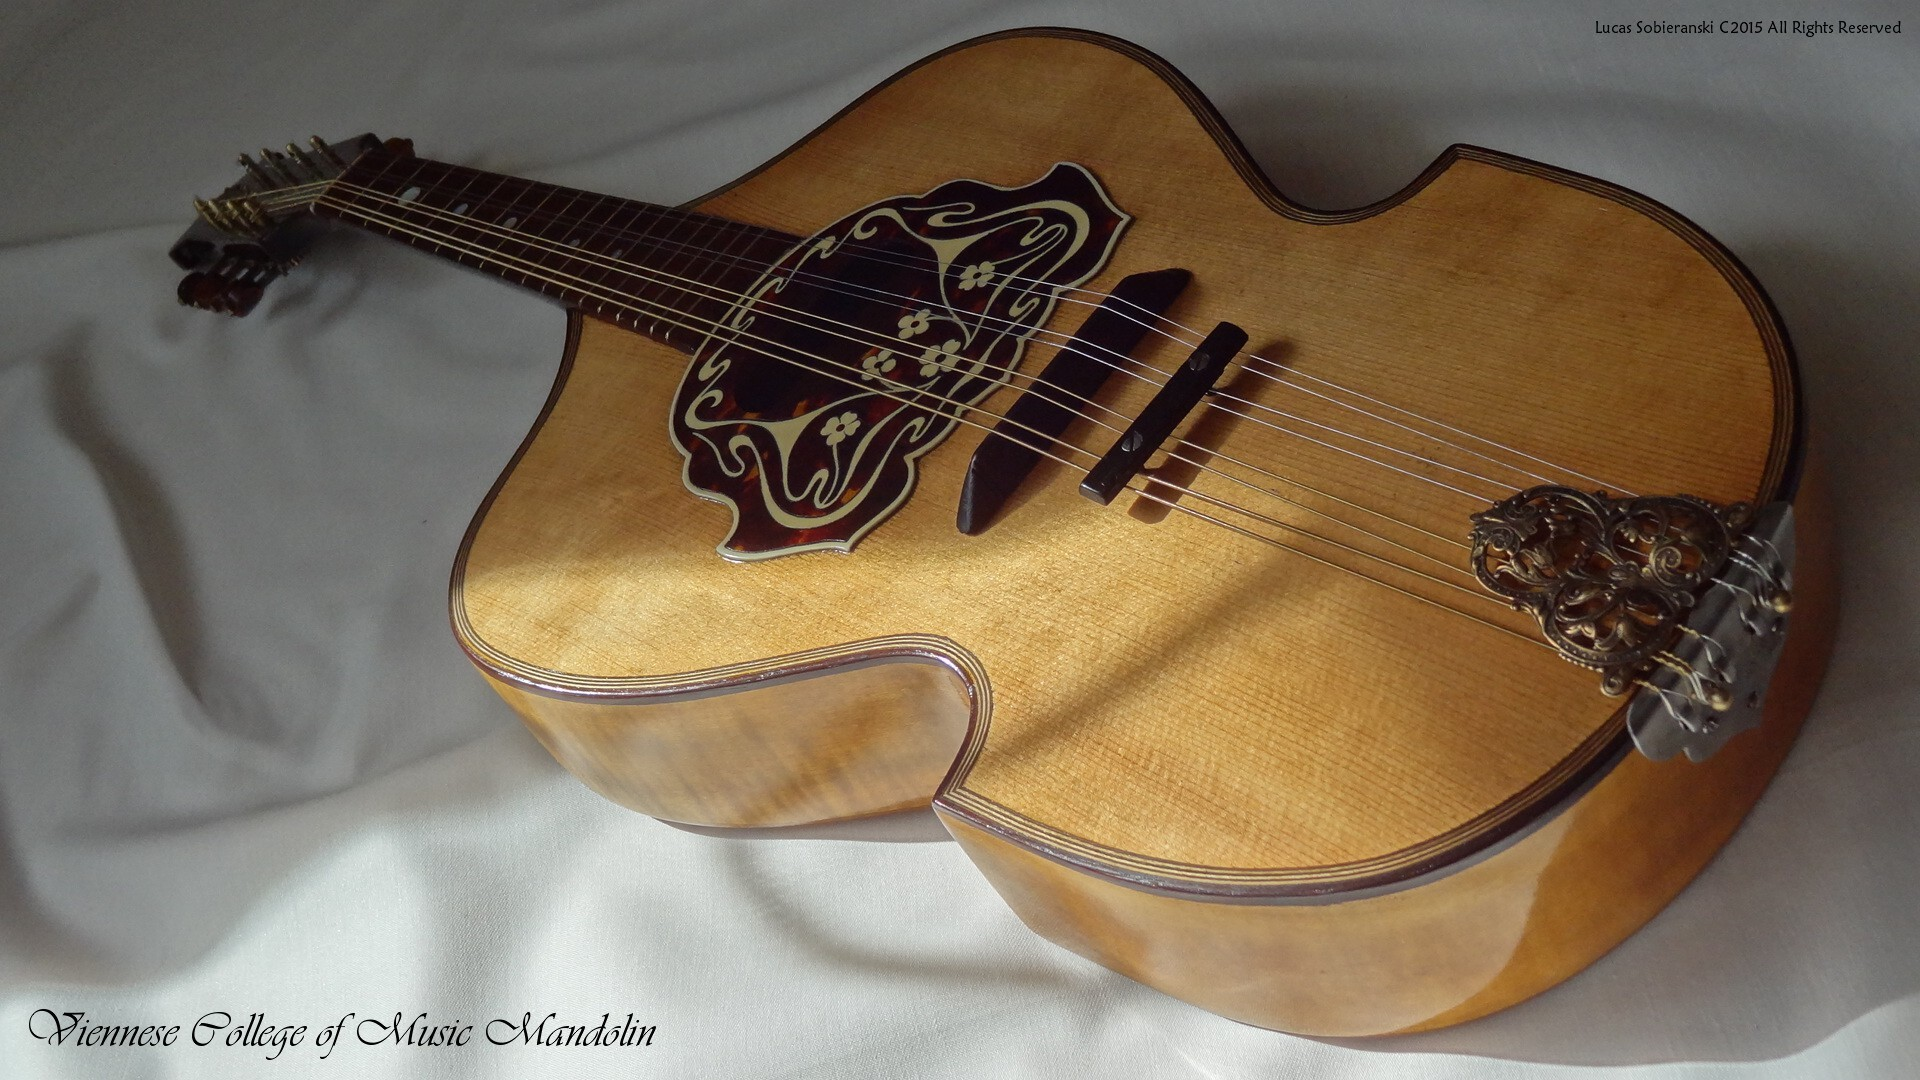 Viennese College of Music Mandolin